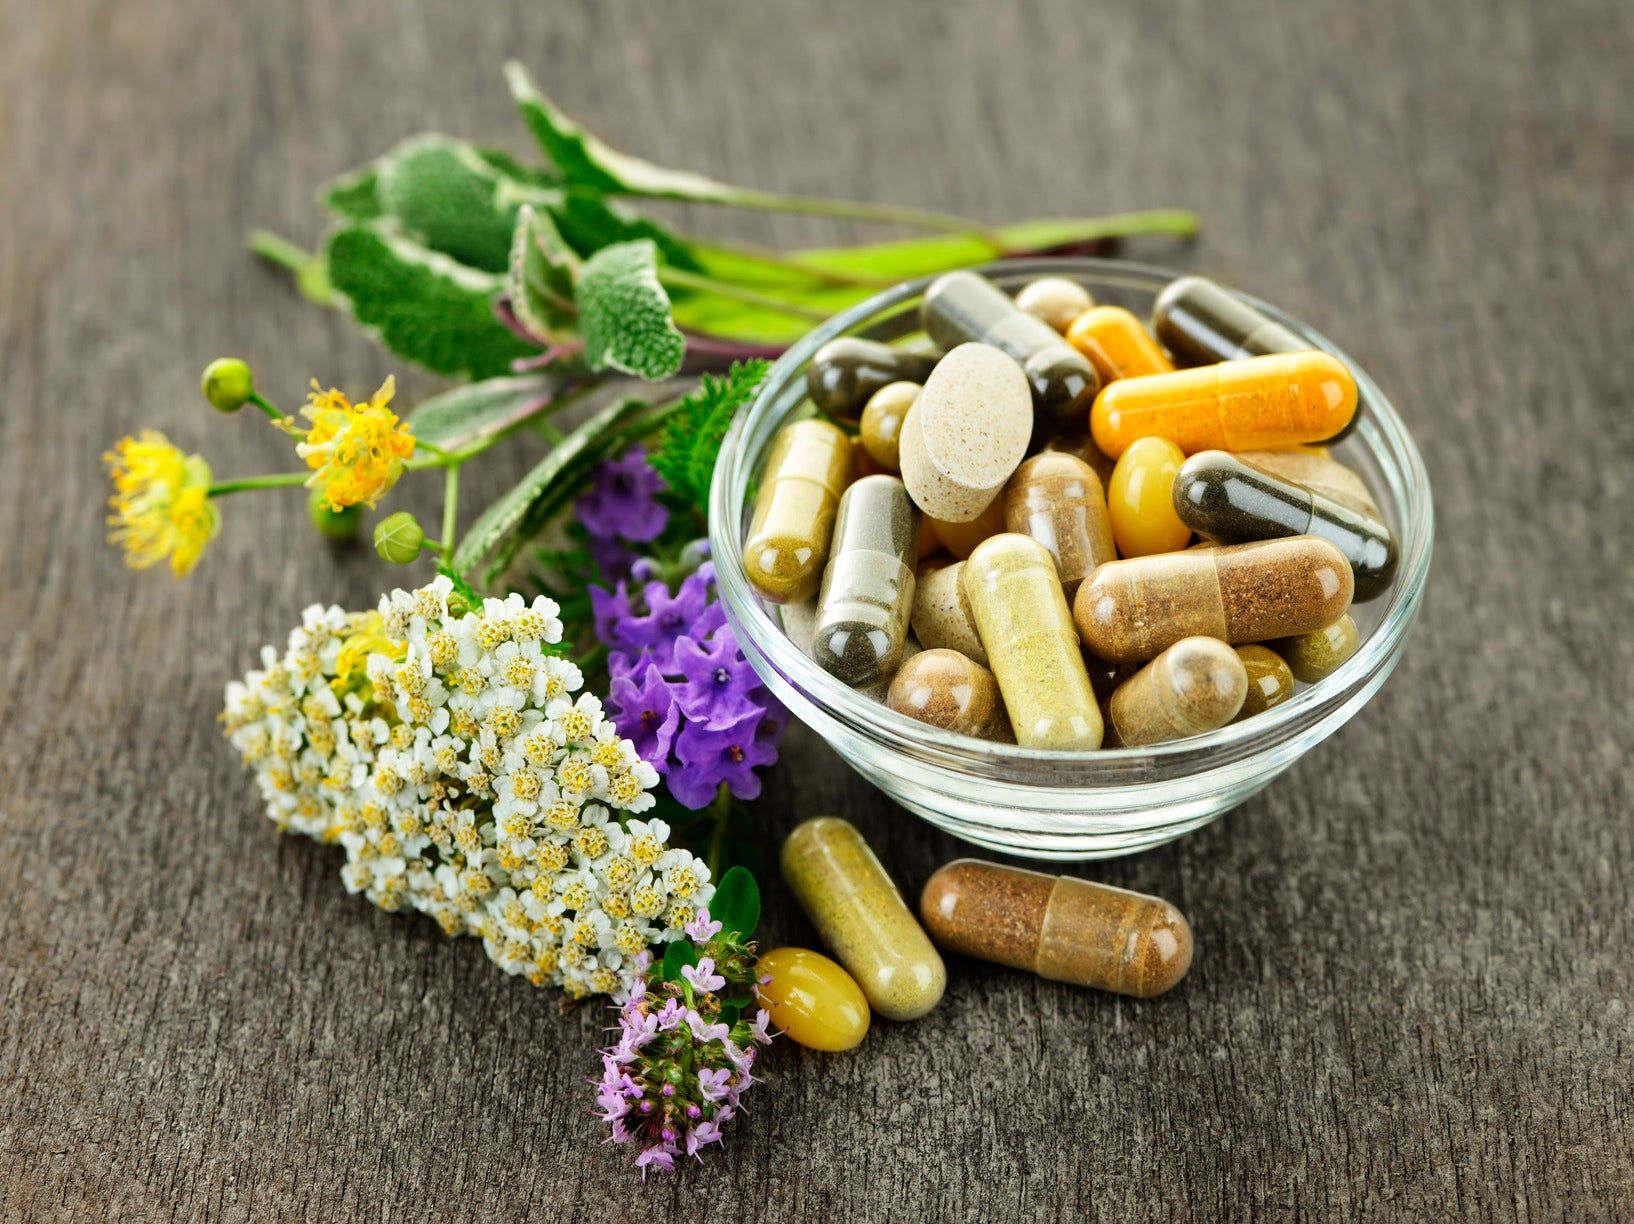 Who Should Be Taking a Multivitamin?